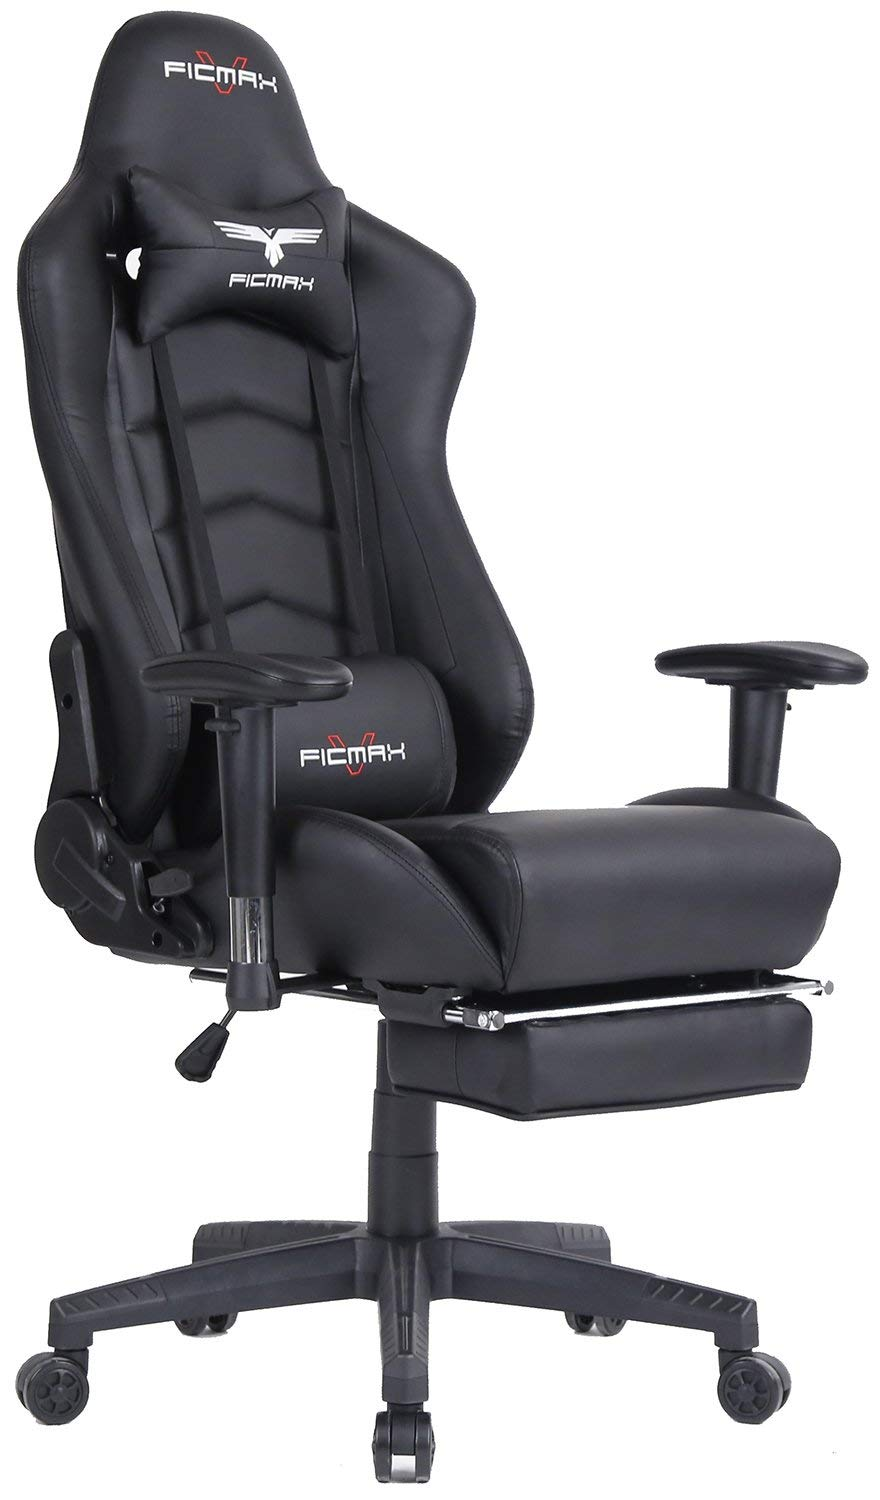 FICMAX Ergonomic High-back Large Size Computer Chair